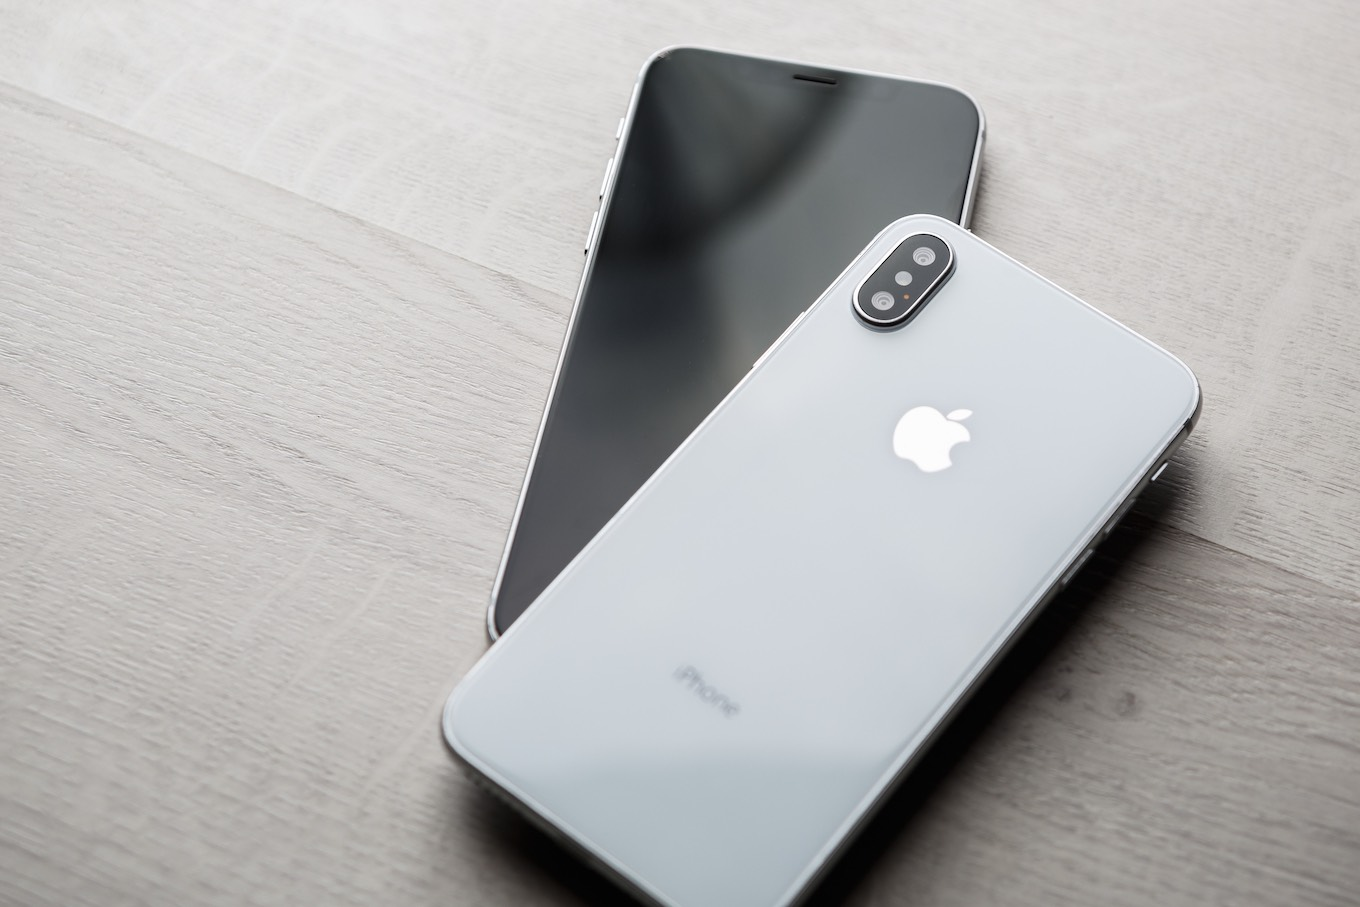 iPhhone X and iPhone XS side-by-side